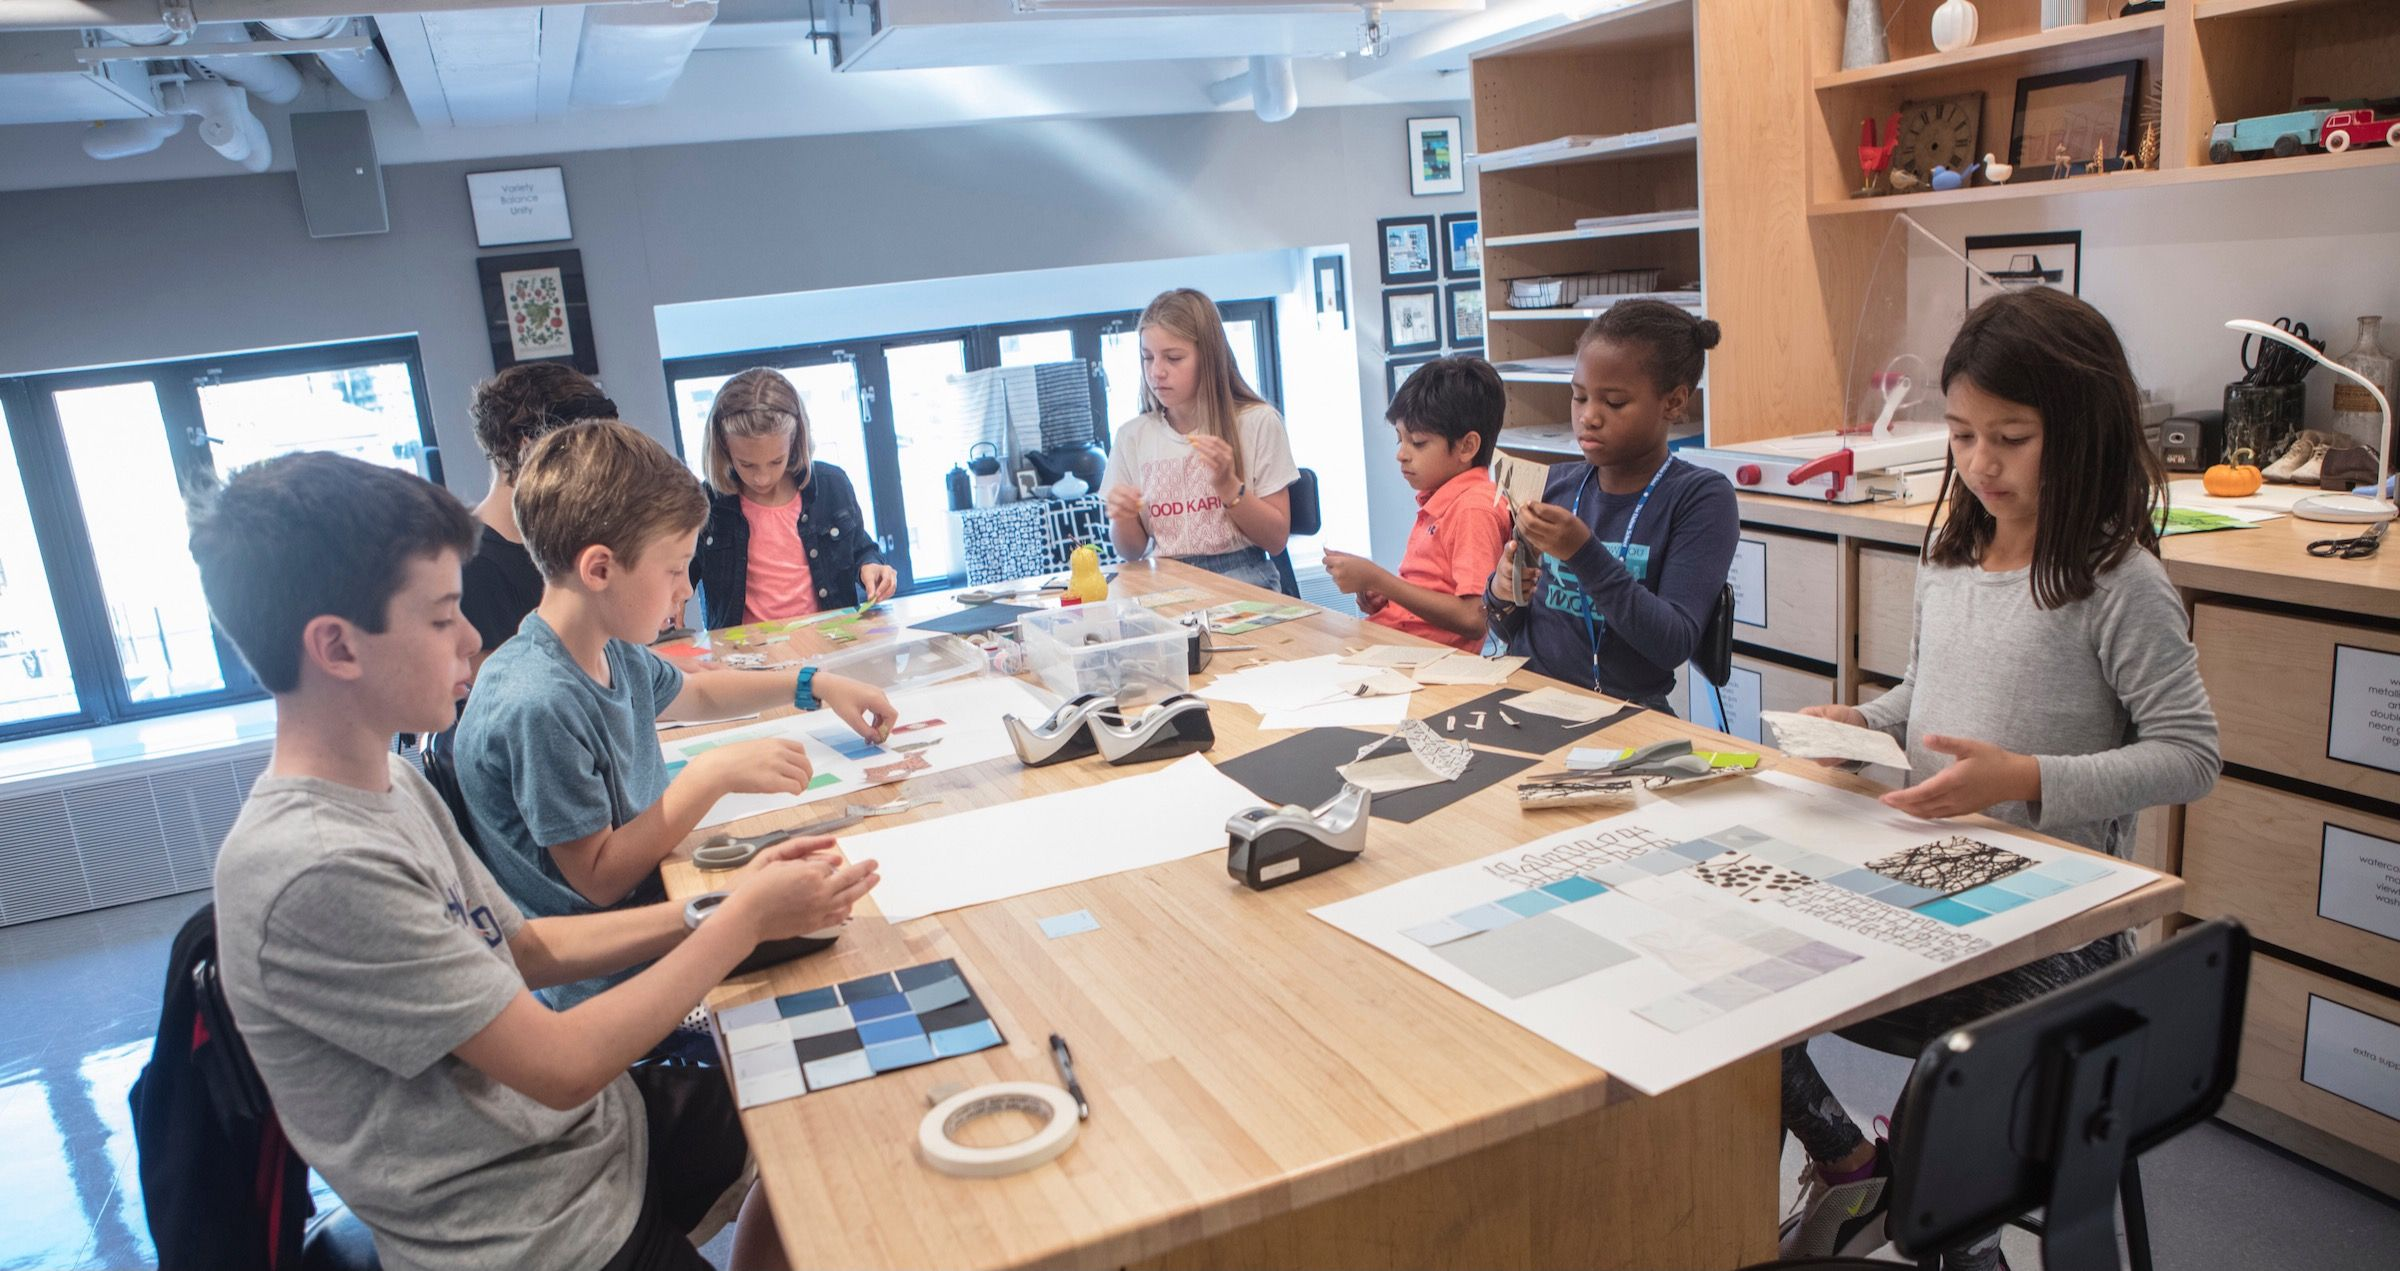 The K-12 art curriculum encourages inventive thinking, creative problem solving, and visual awareness, as well as intellectual, social and emotional development.